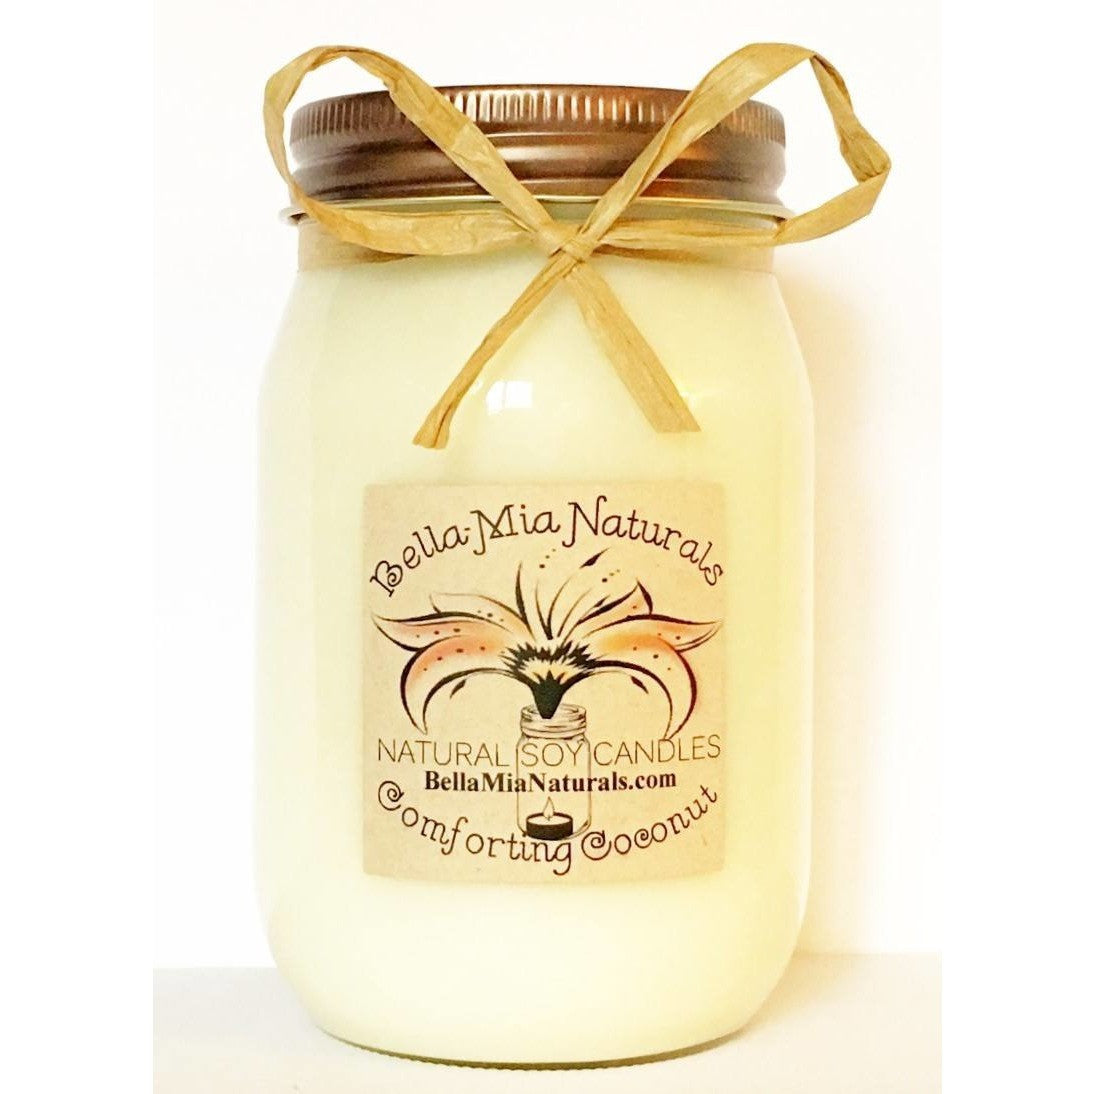 Comforting Coconut Natural Hand Poured Soy Candles - Pint - Bella-Mia Naturals All Natural Soy Candles & Lip Balms - 1